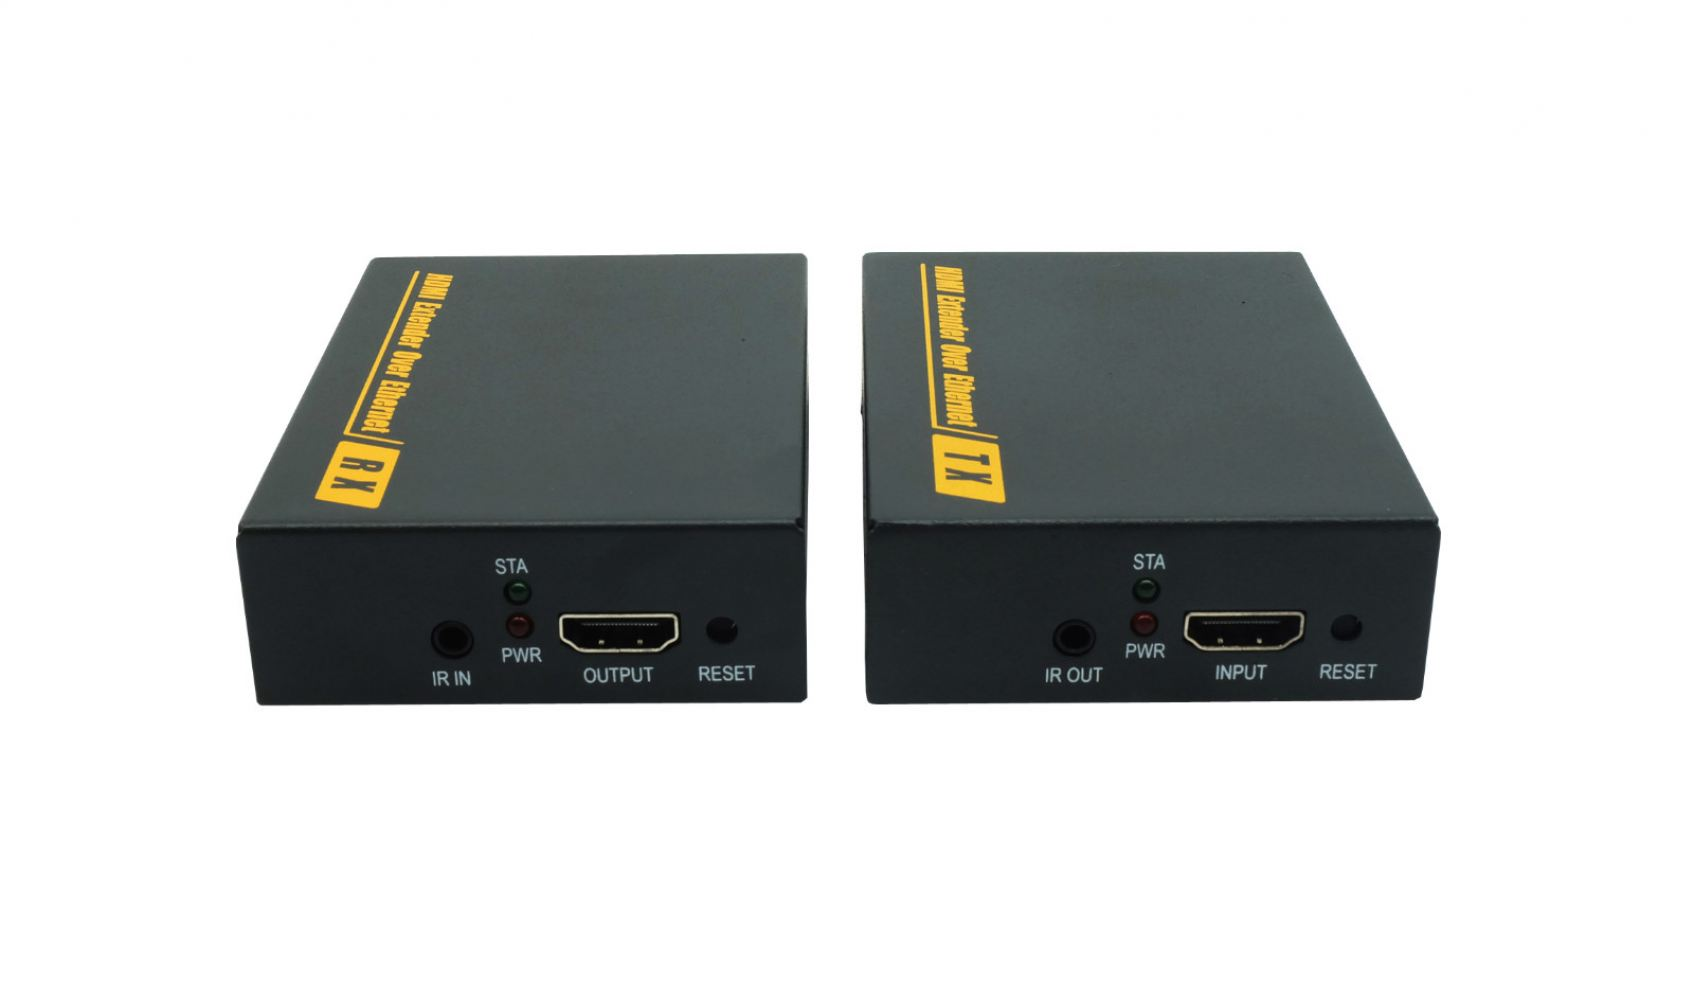 PWAY PW-DT103: HDMI Extender Over LAN, CAT5e/6 Cable Up to